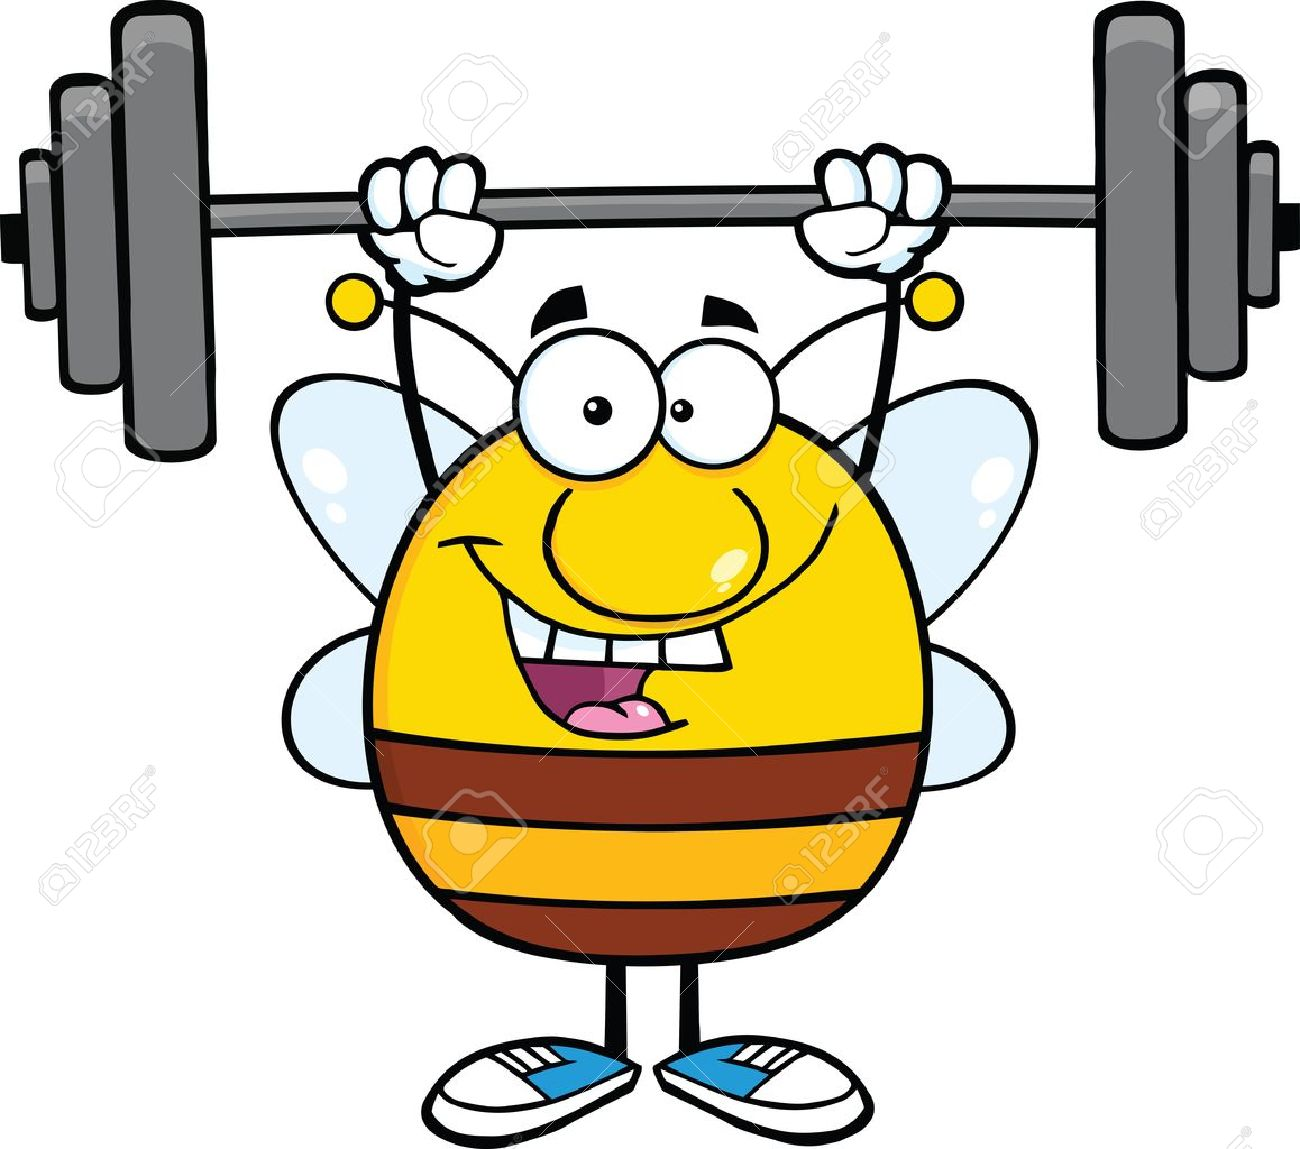 1300x1149 Happy Pudgy Bee Cartoon Mascot Character Lifting Weights Royalty